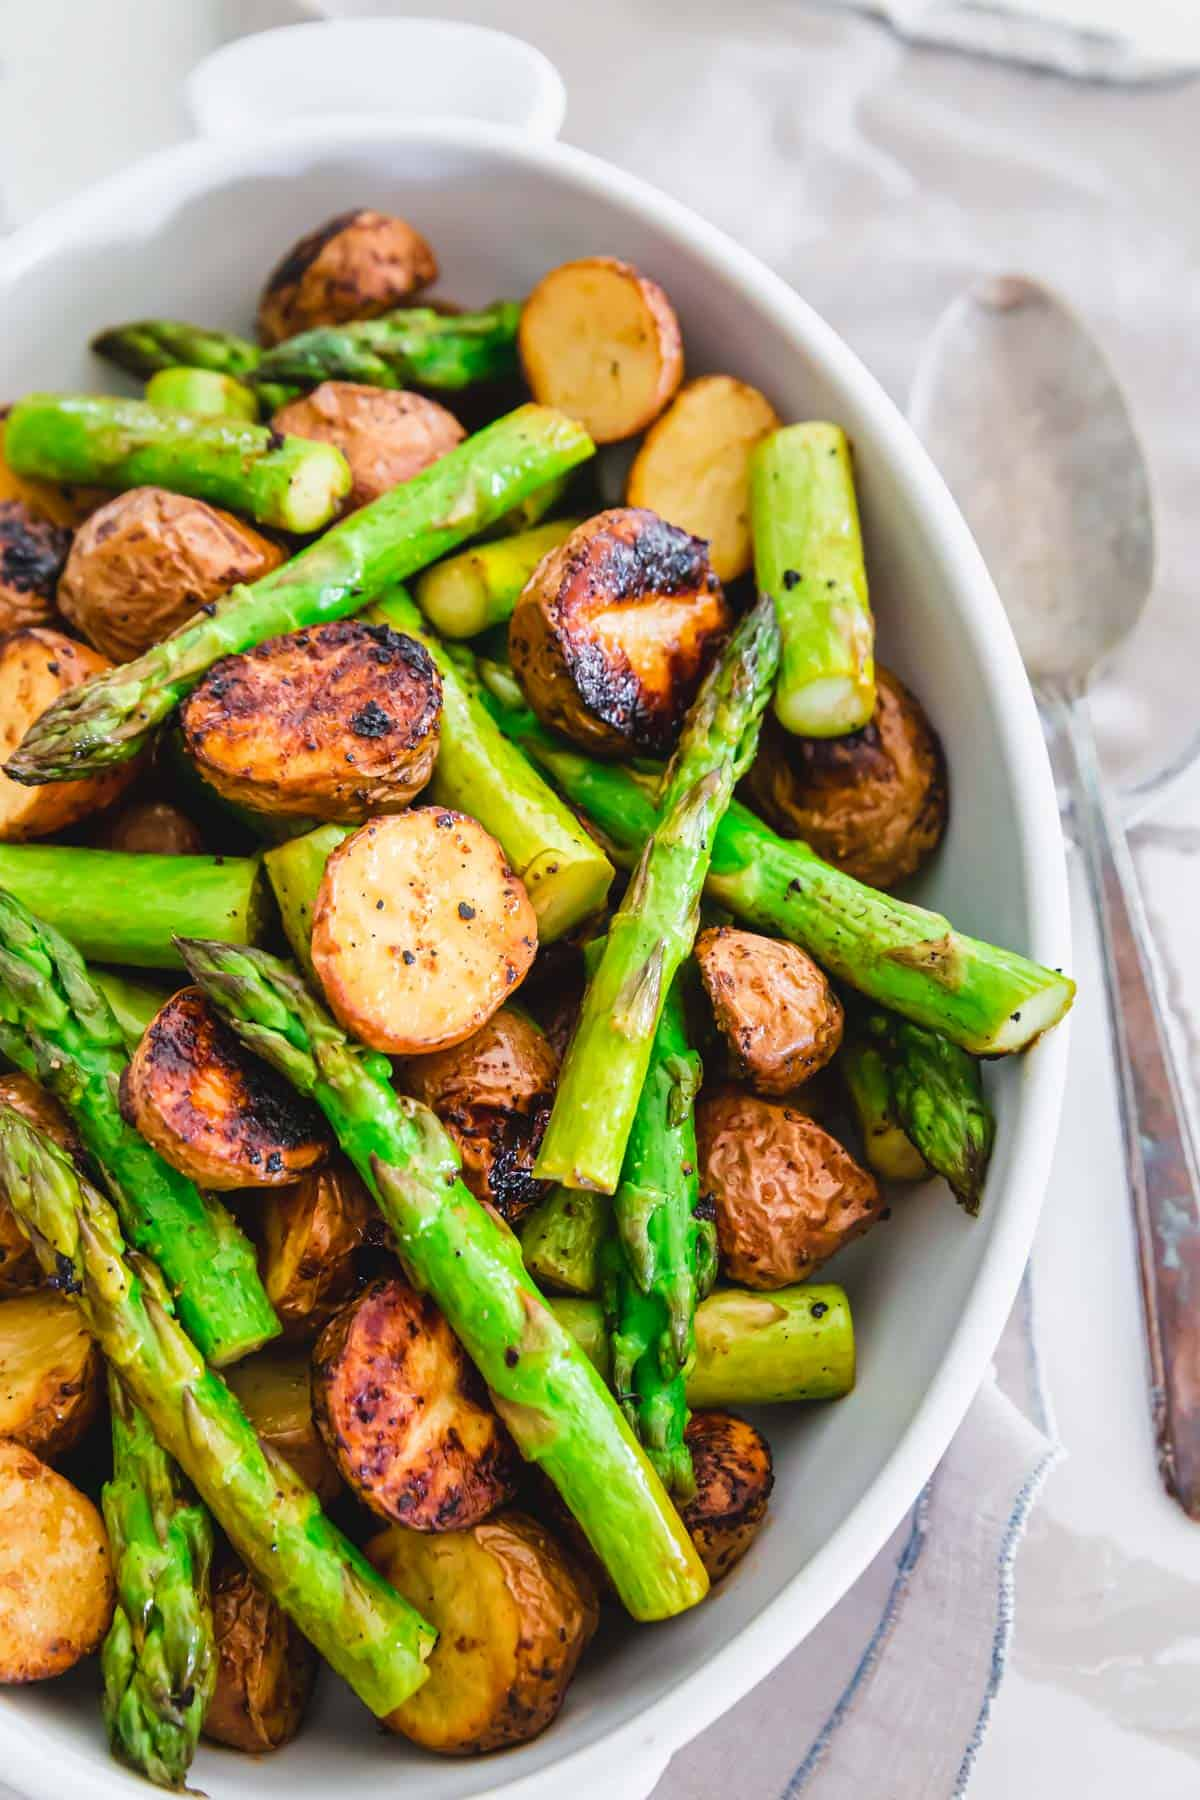 Crispy roasted potatoes and asparagus with garlic balsamic